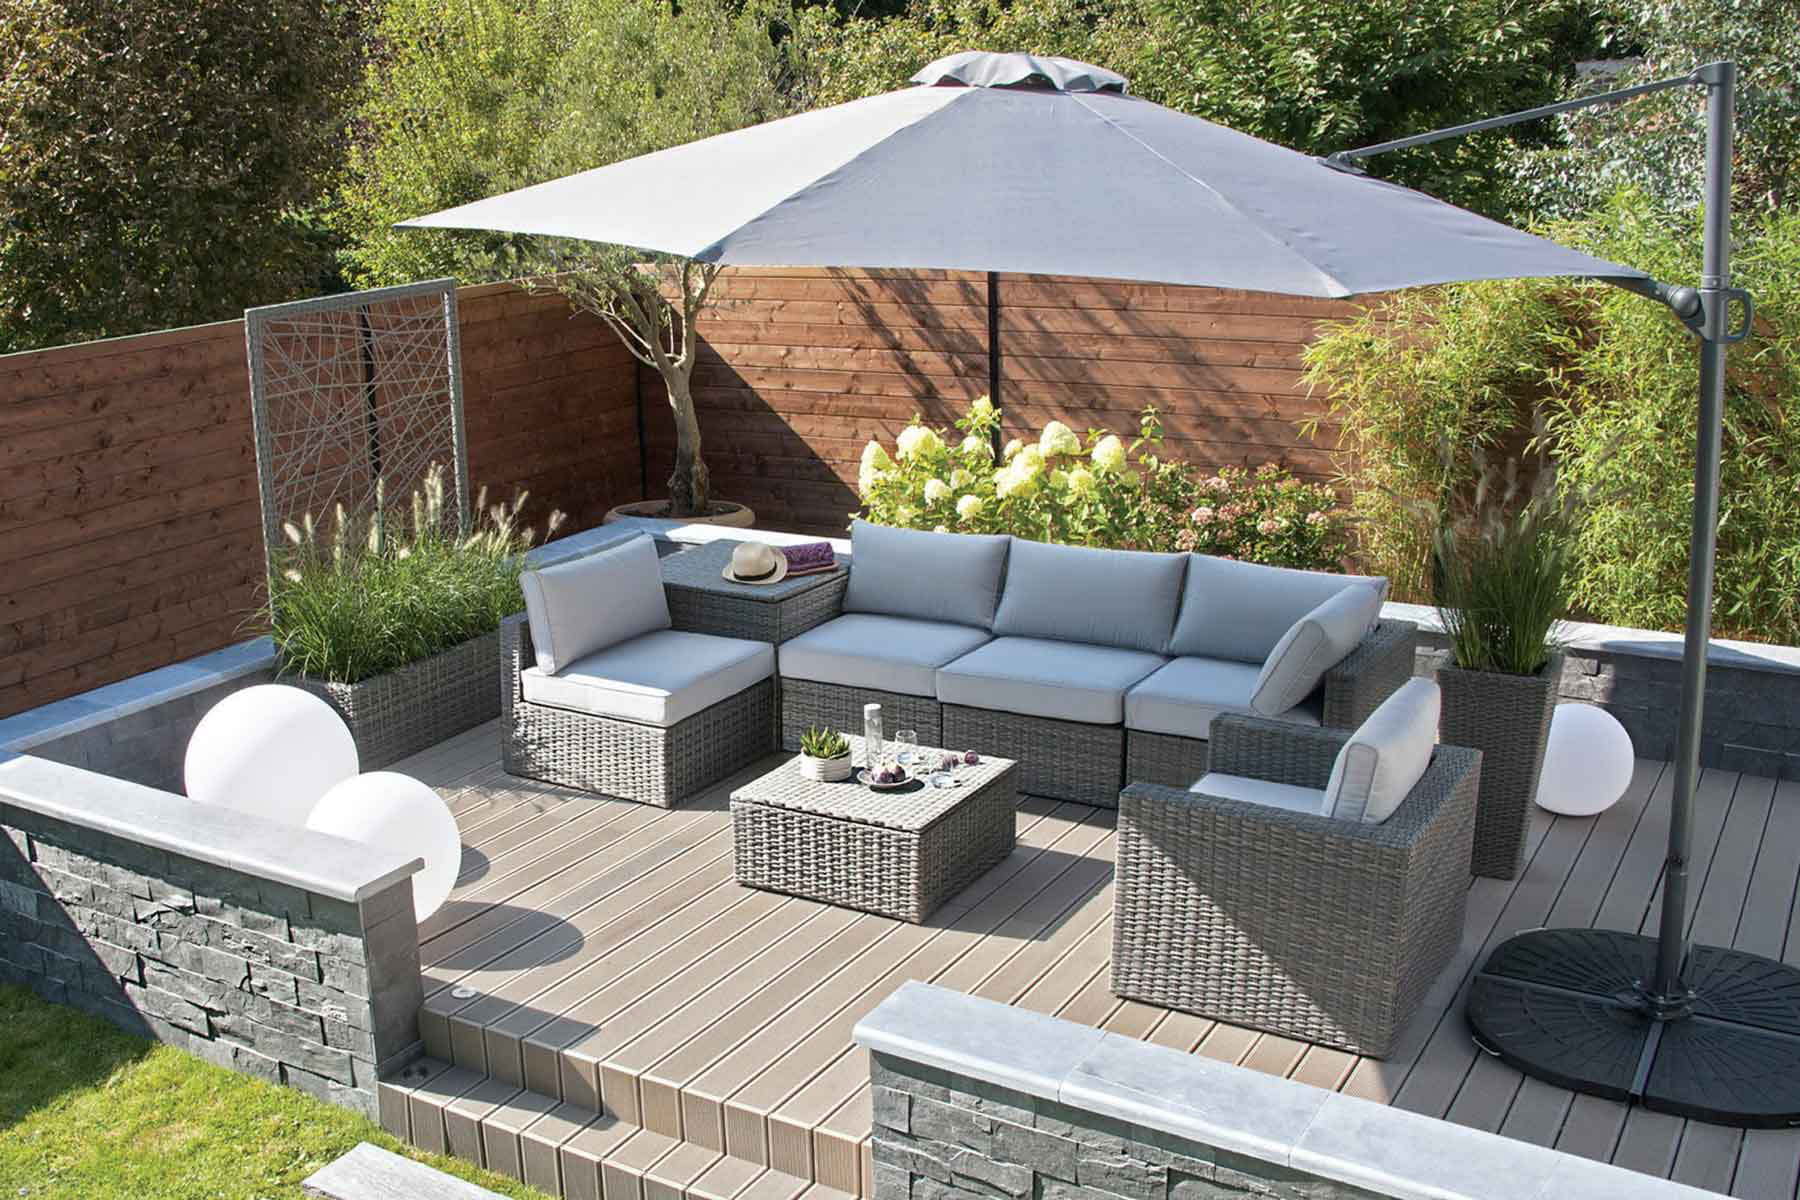 des boules lumineuses pour clairer la terrasse. Black Bedroom Furniture Sets. Home Design Ideas